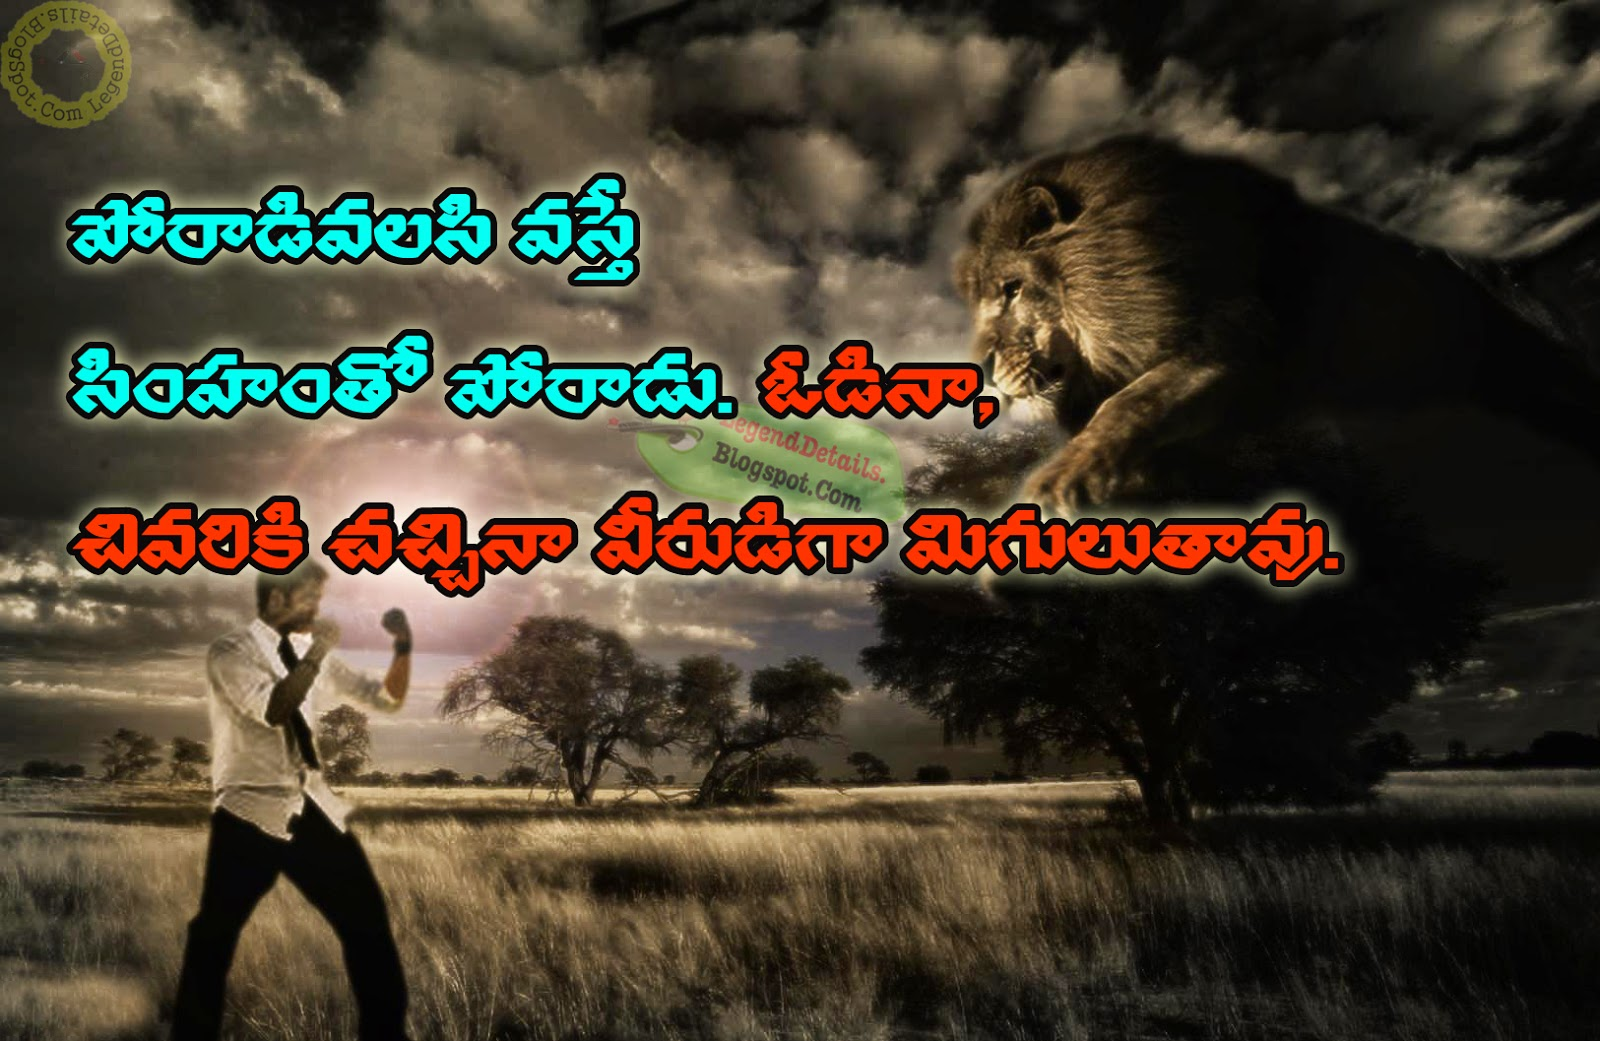 Quotes That Are Inspirational About Life Powerful Inspirational Life Quotes In Telugu  Legendary Quotes